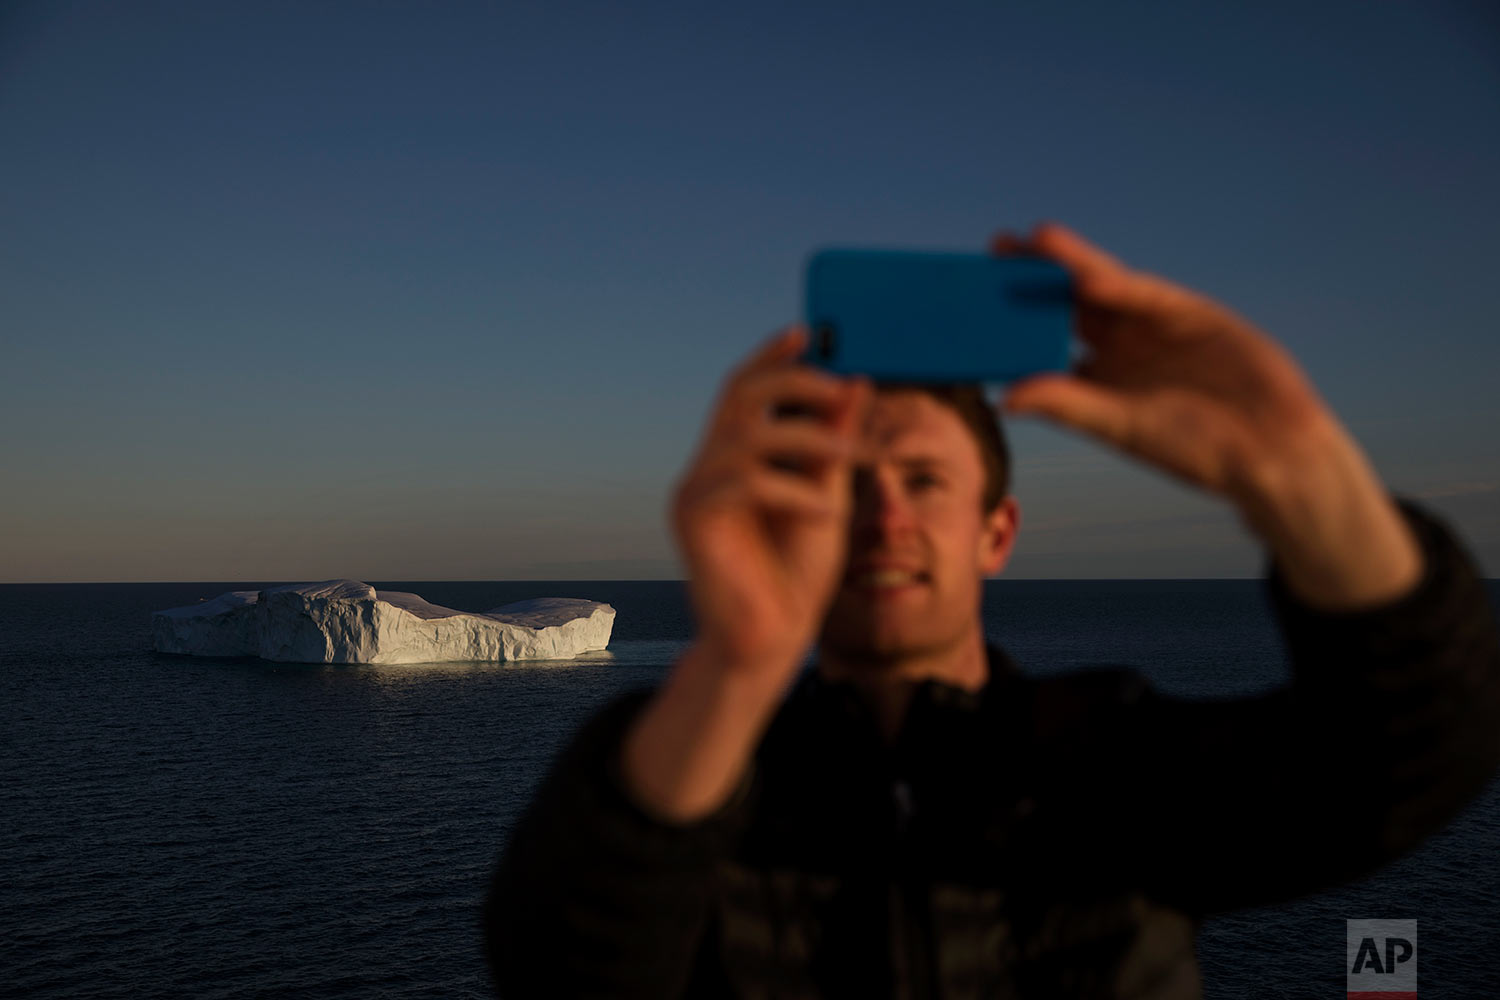 Researcher Scott Joblin takes a selfie while passing an iceberg floating in Baffin Bay in the Canadian Arctic Archipelago while aboard the Finnish icebreaker MSV Nordica, Tuesday, July 25, 2017.(AP Photo/David Goldman)